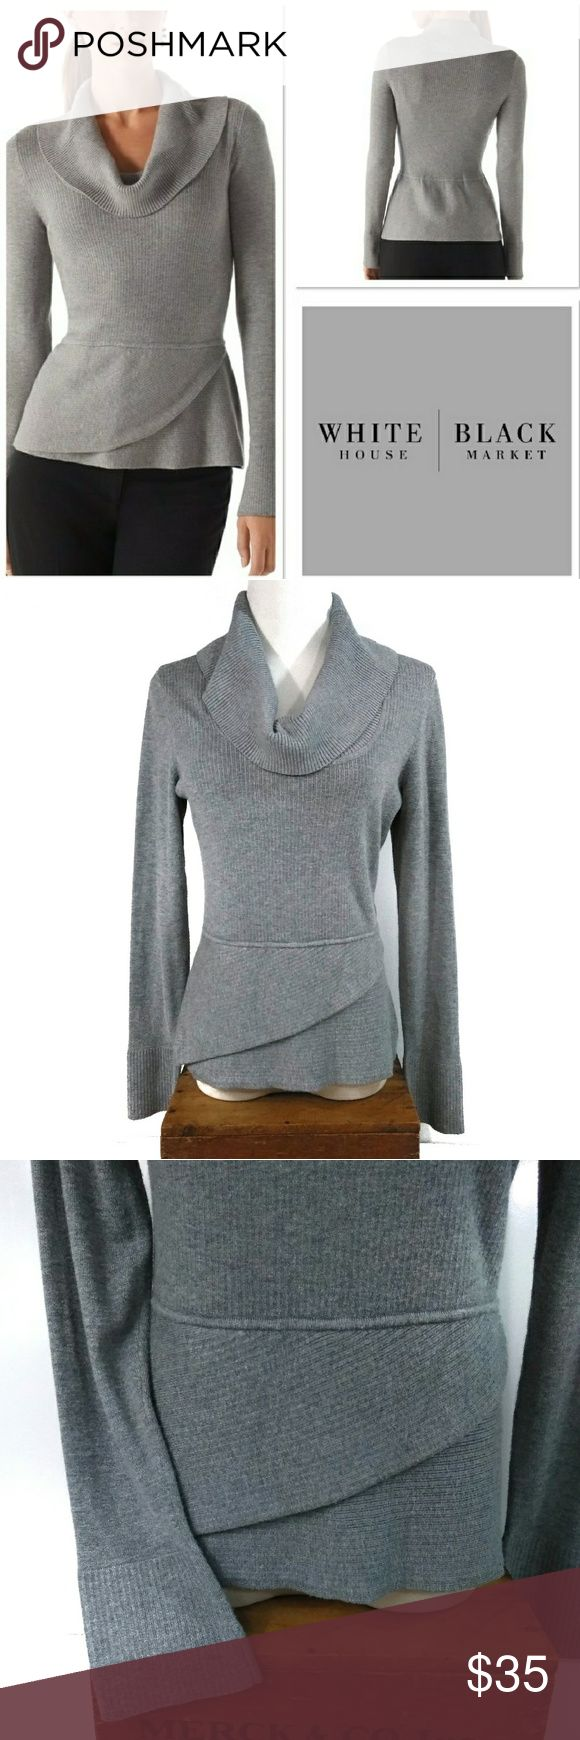 """WHBM Gray Cowl Neck Surplice Peplum Sweater Top Excellent condition! Worn once!   Size S. 16"""" pit to pit, 23"""" total length, 24"""" sleeves, 14"""" across waist- but does stretch!   Adoration is too simple a word to describe how I feel about this top! So unique, yet so simple, and oh, so classy! White House Black Market (and the quality that comes with the name) cowl neck surplice peplum sweater top in light gray! Dress it up or down, the choice is yours! White House Black Market Sweaters Cowl…"""